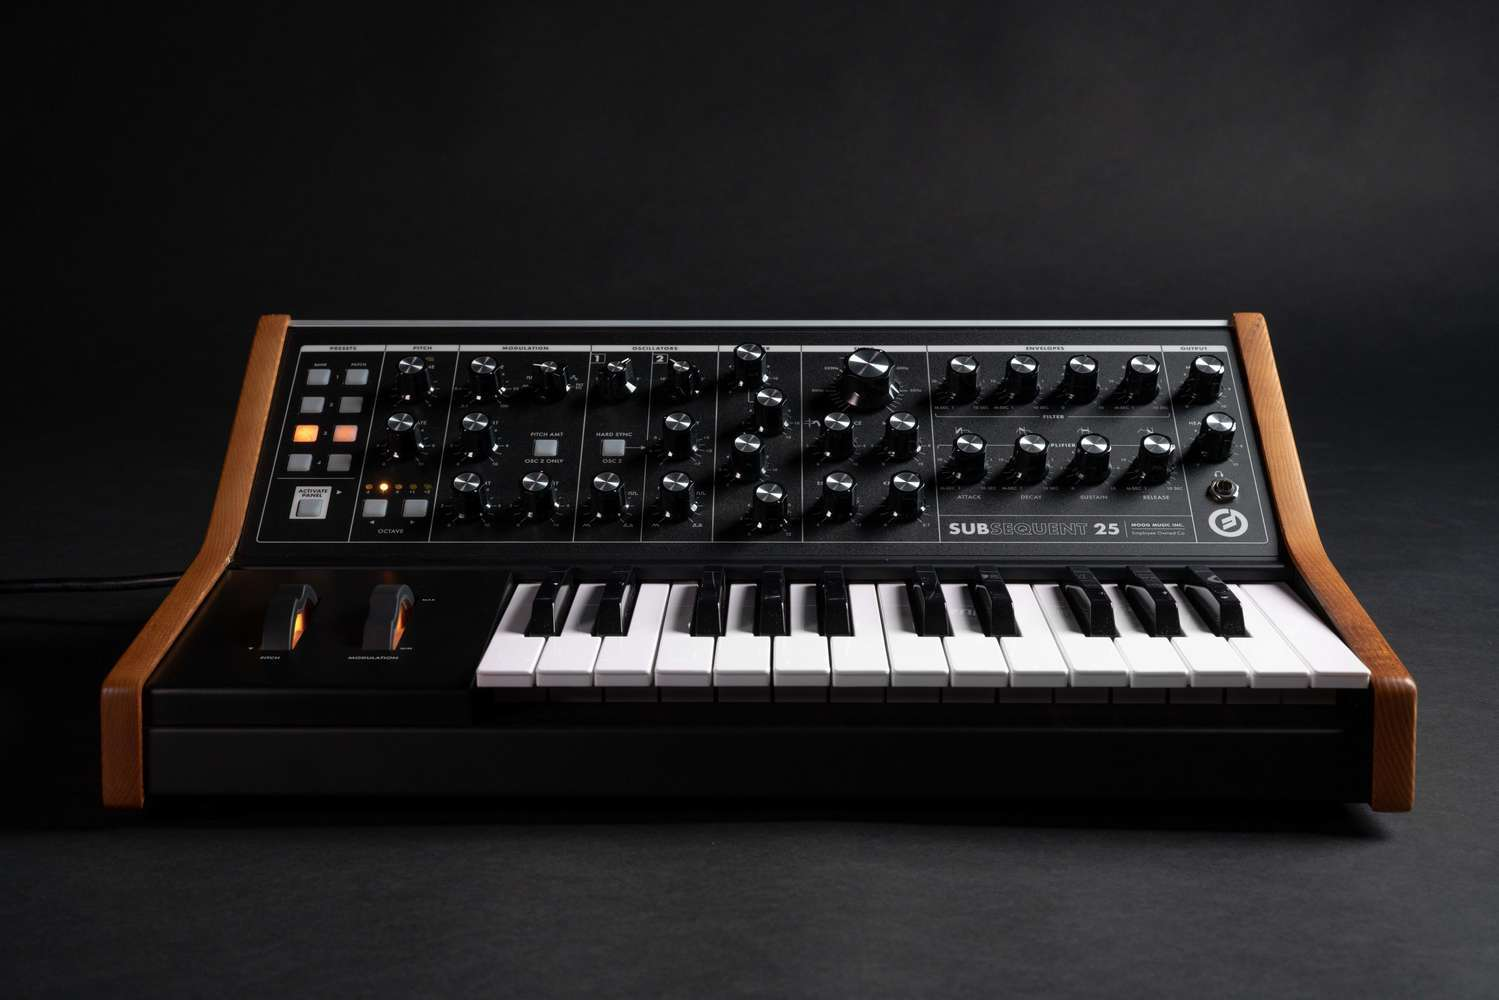 Subsequent 25 on black product shot 4